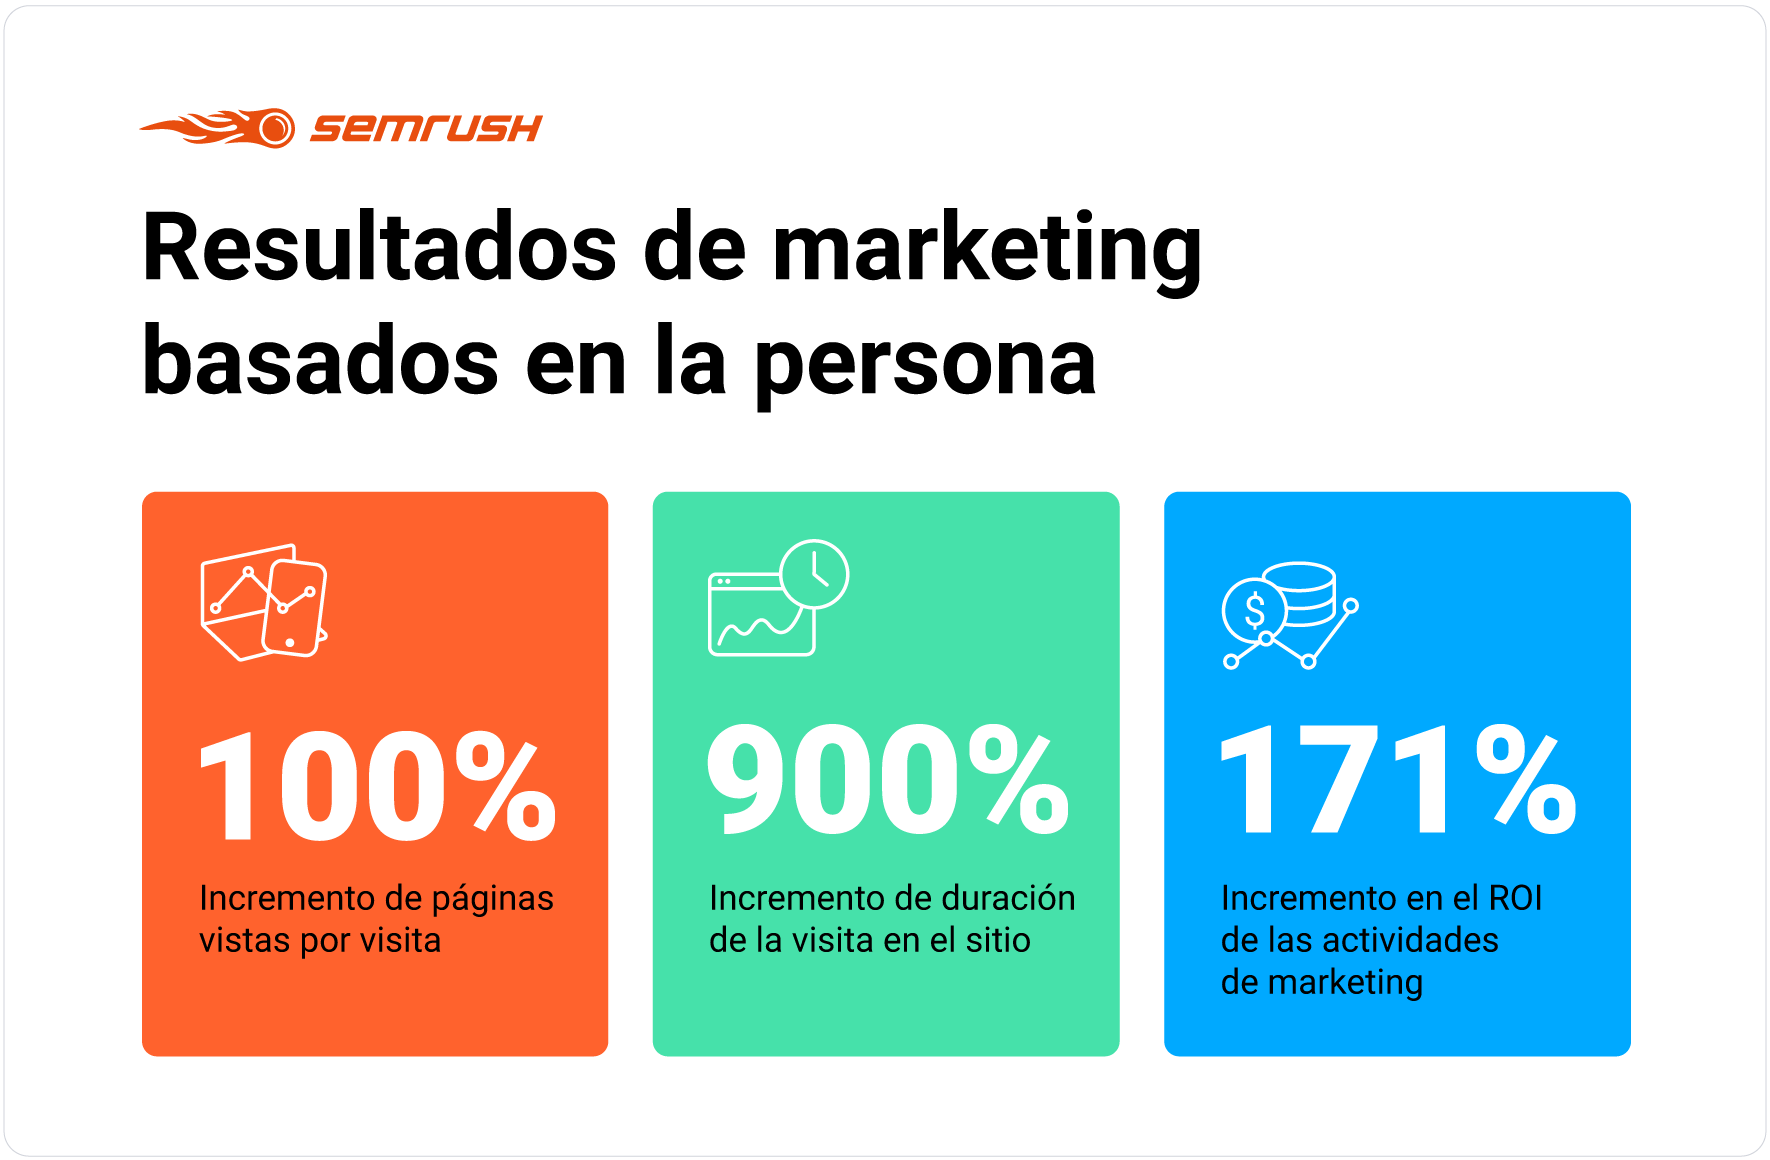 Resultados de marketing basados en la persona